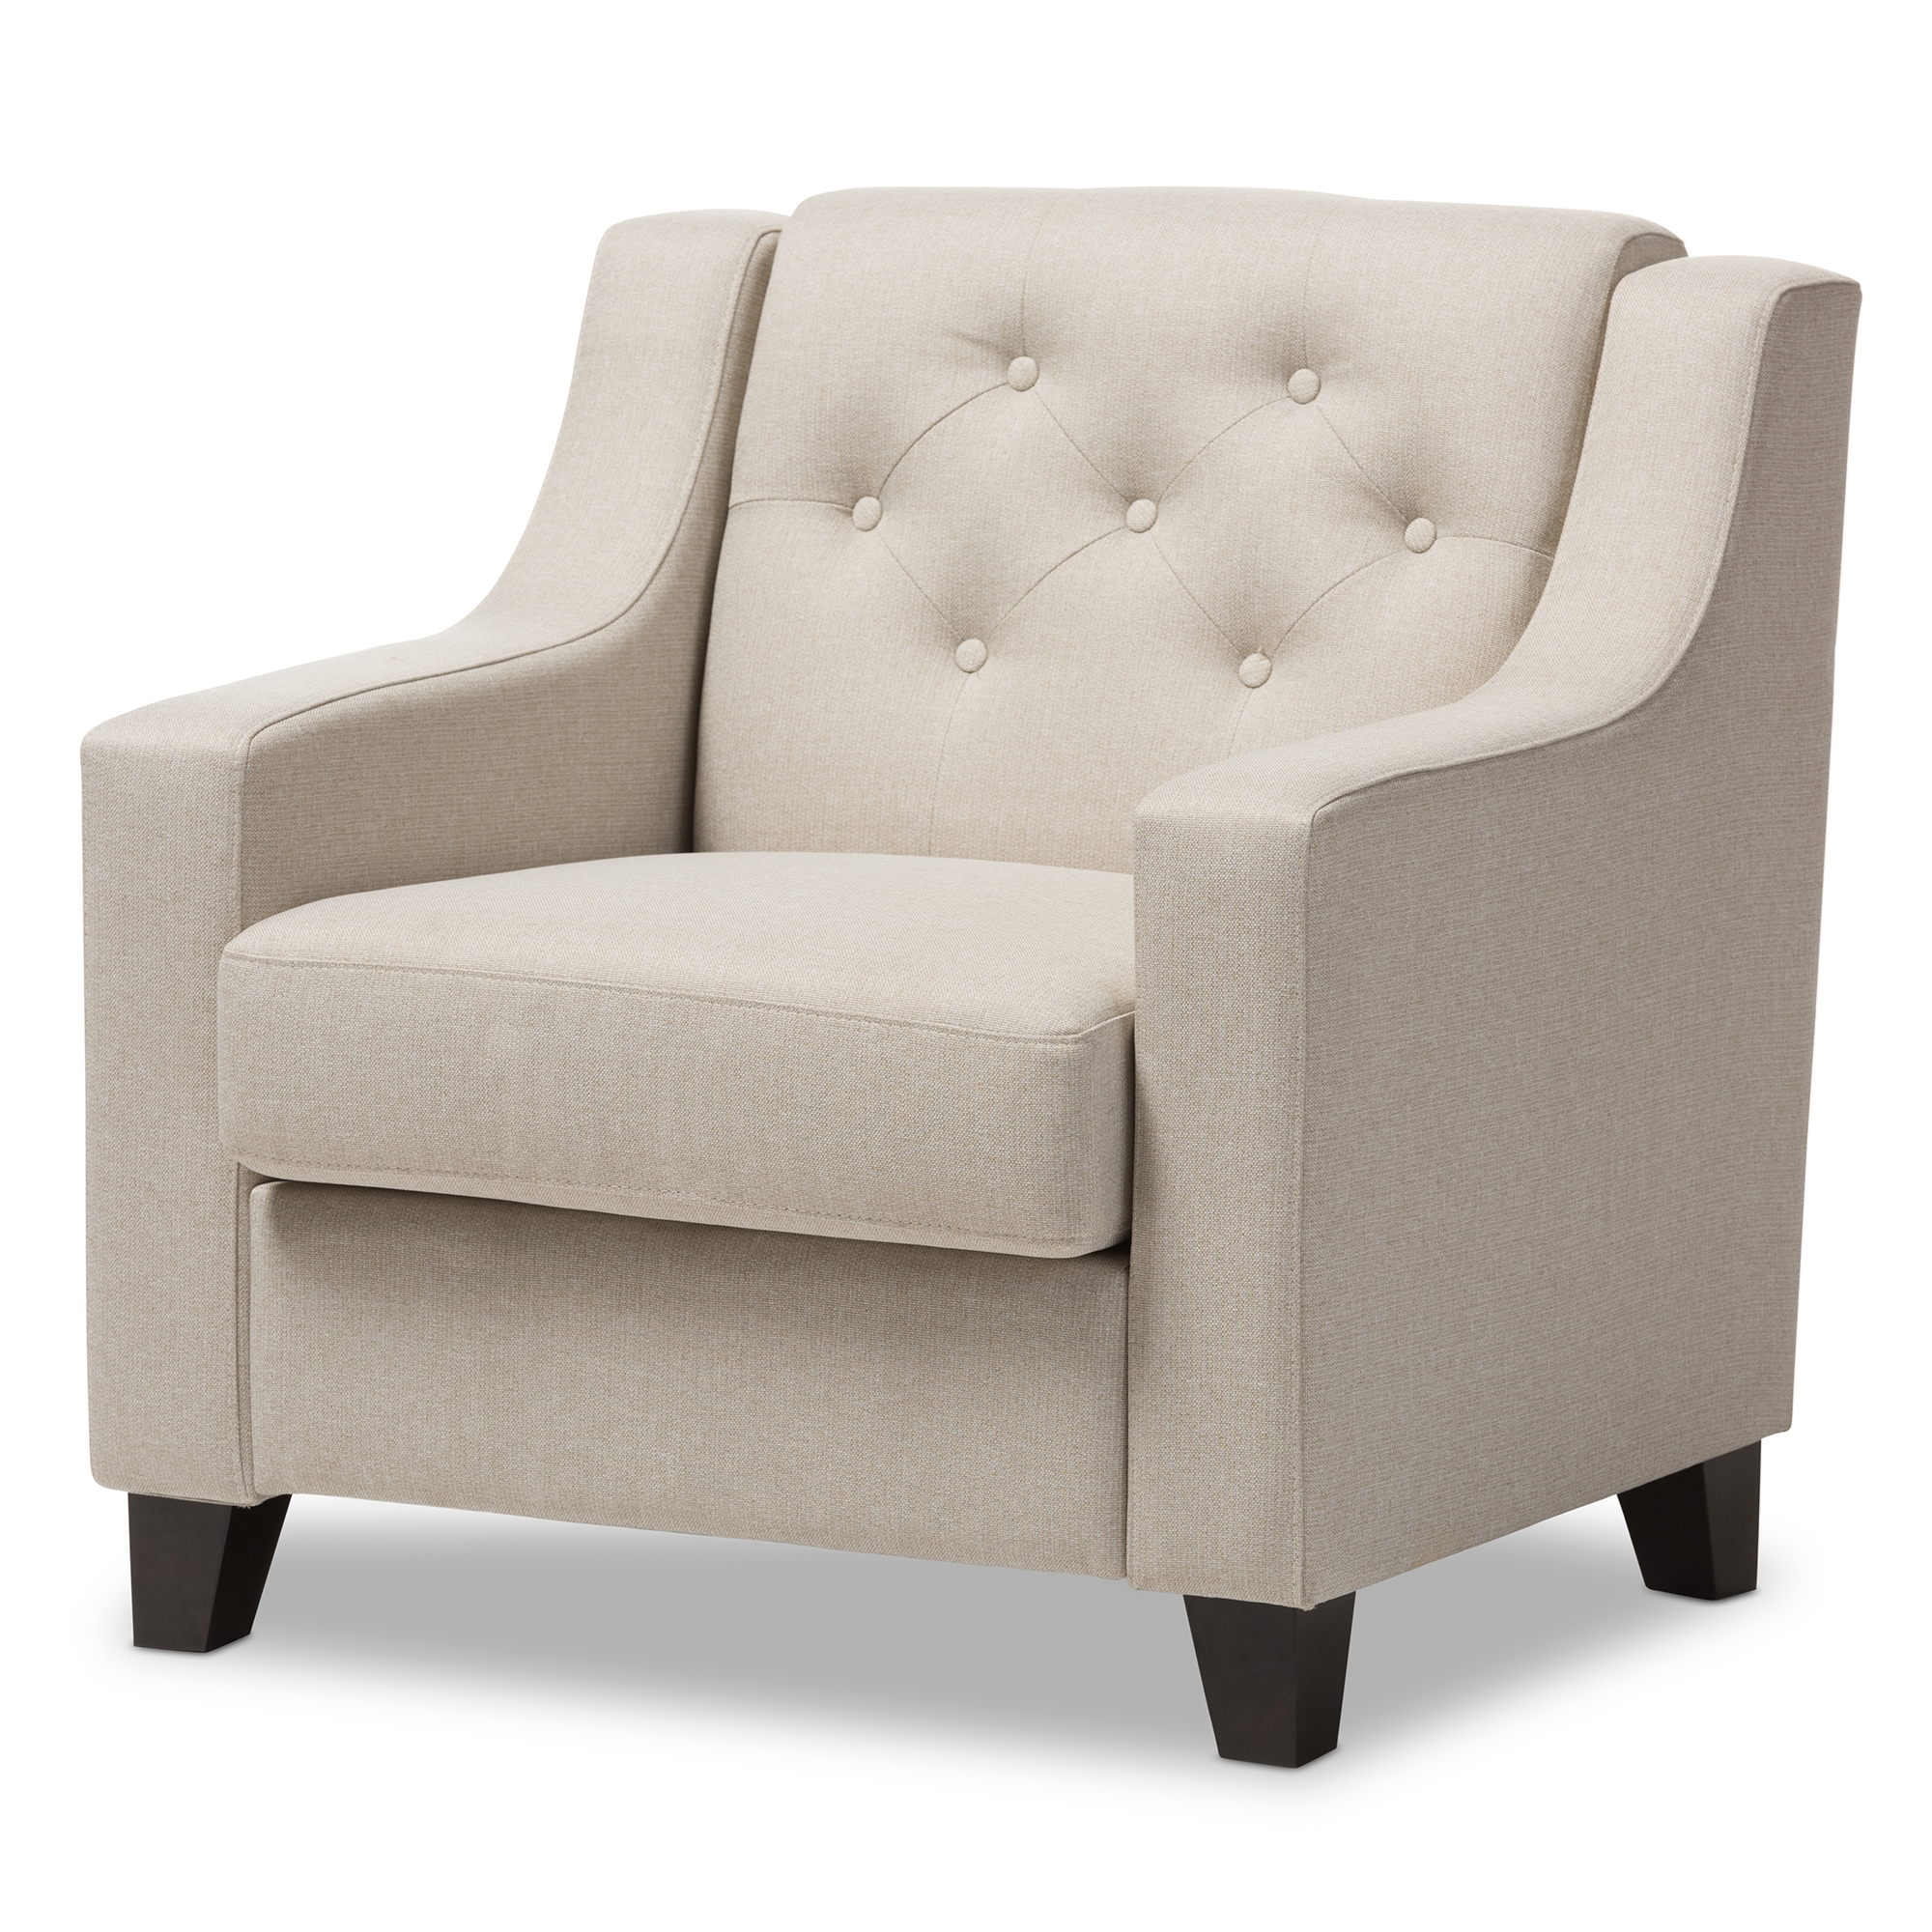 Baxton studio arcadia modern and contemporary light beige - Modern upholstered living room chairs ...